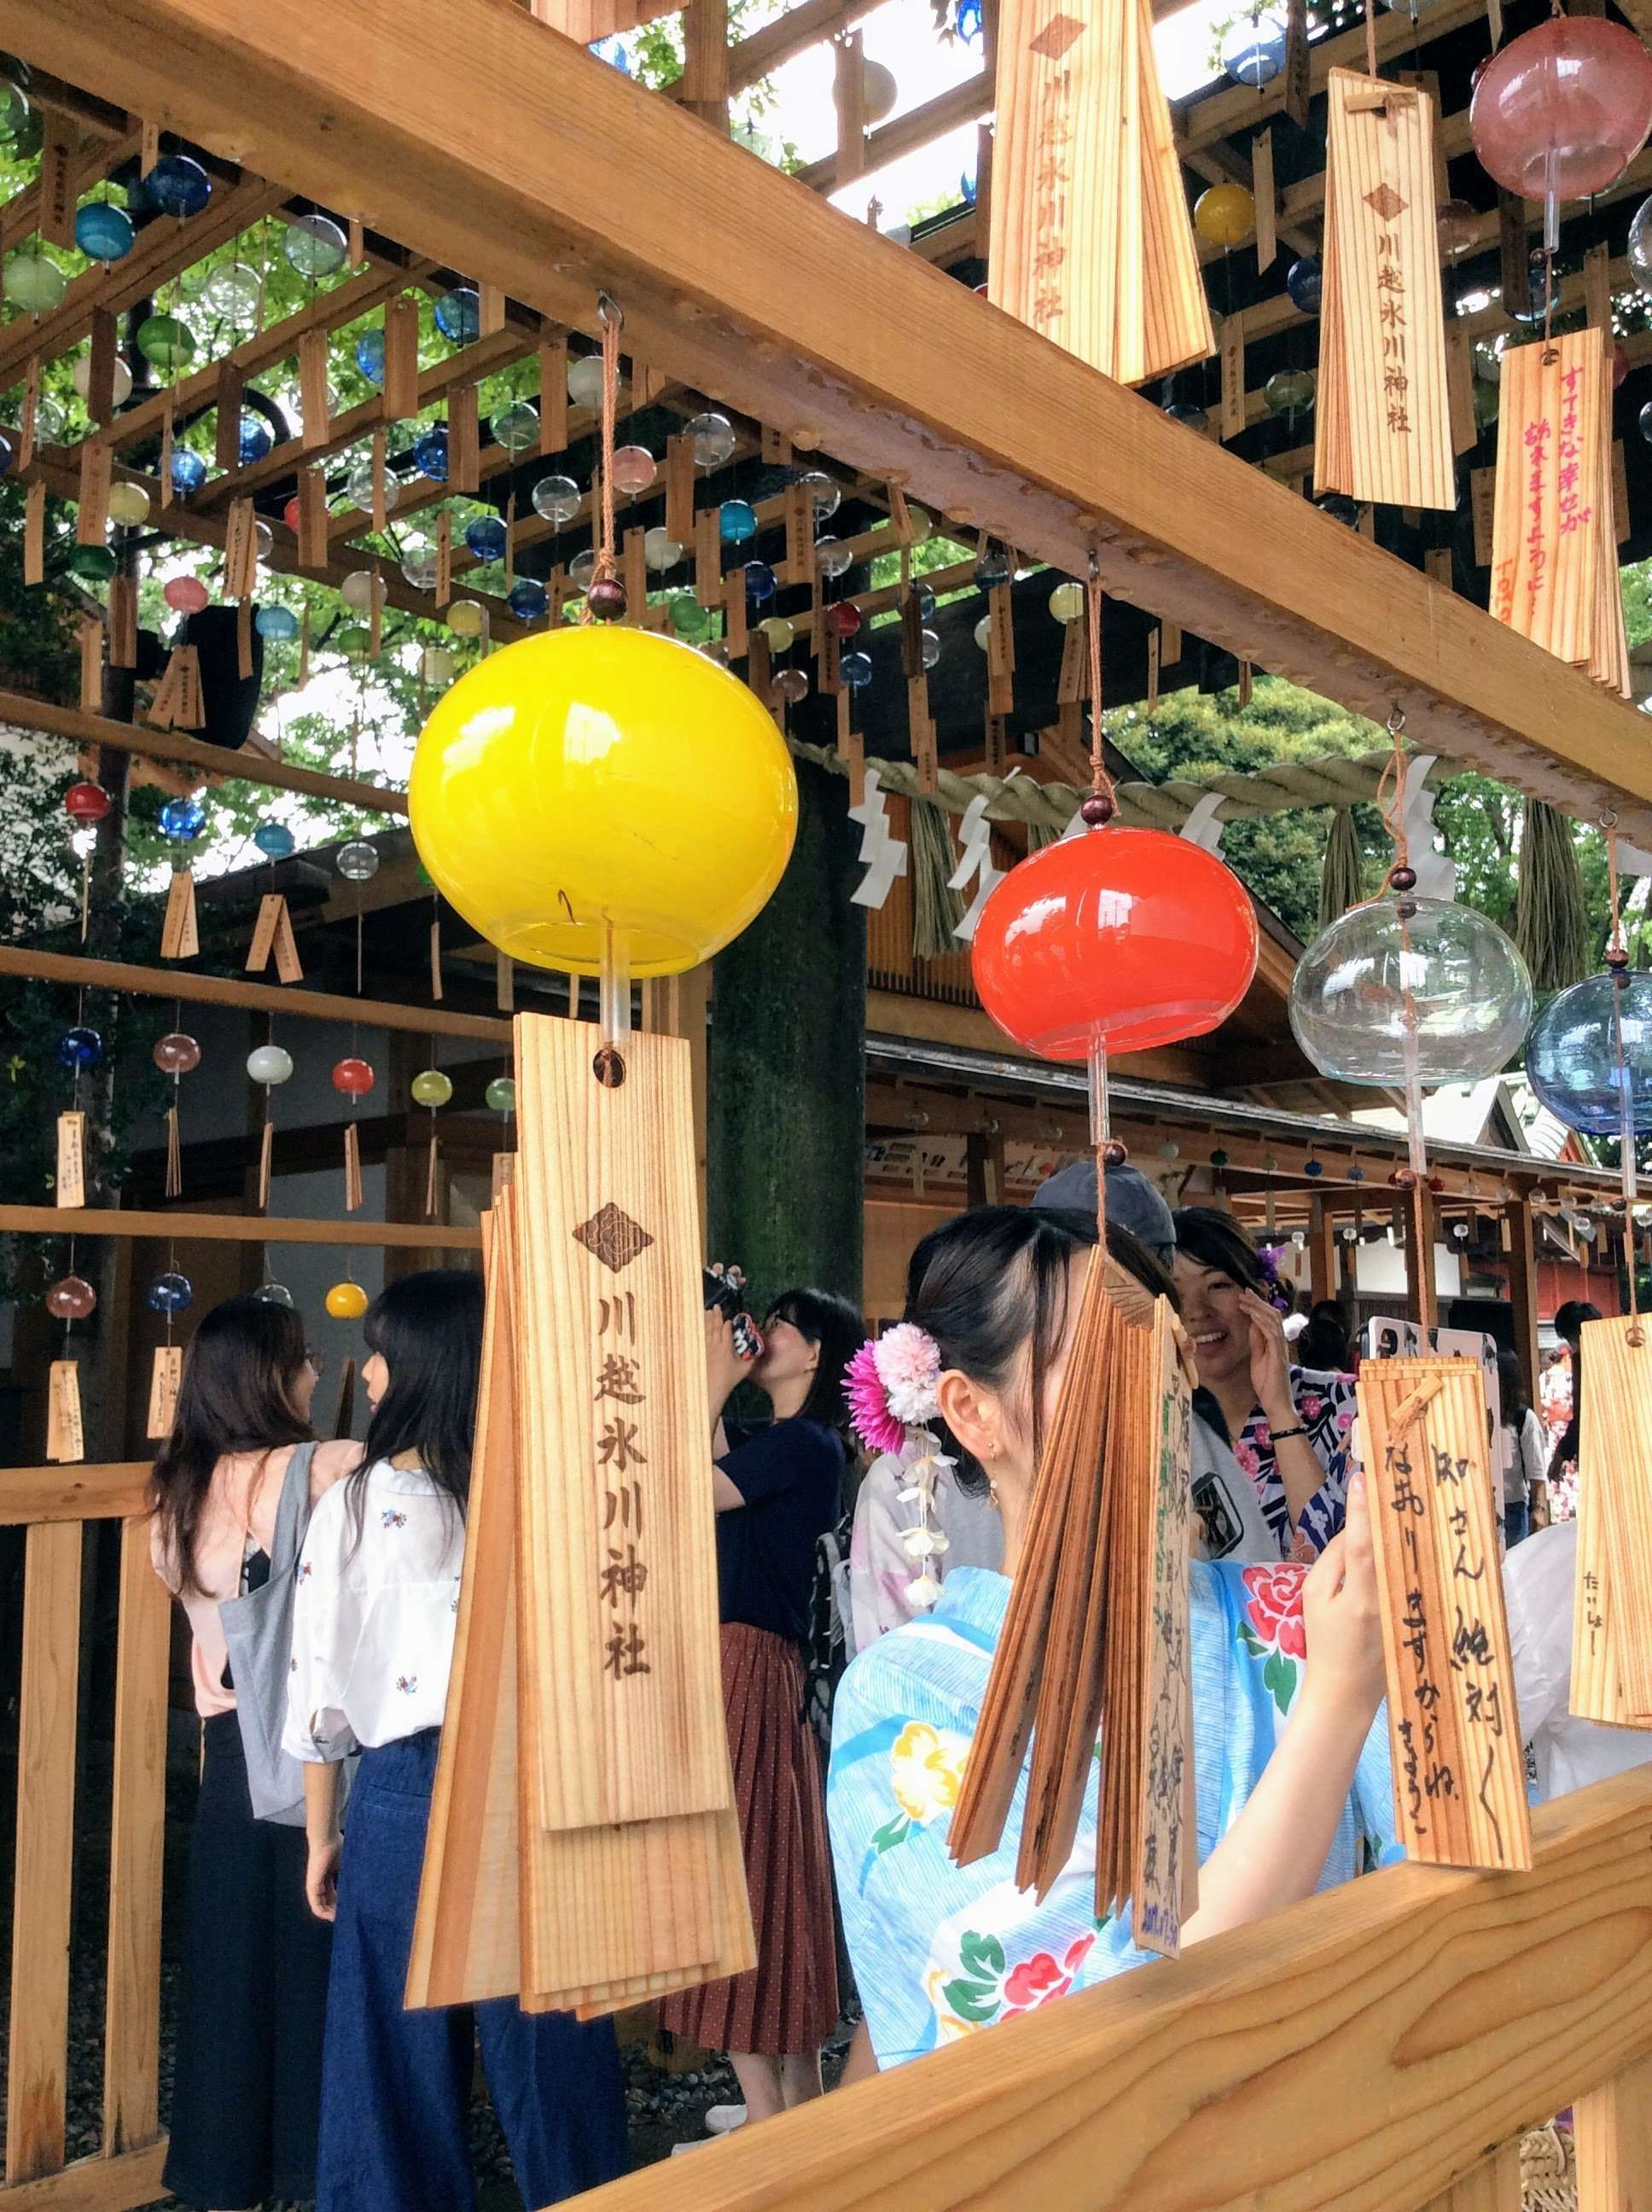 Wind chimes at Kawagoe HIkawa Shrine